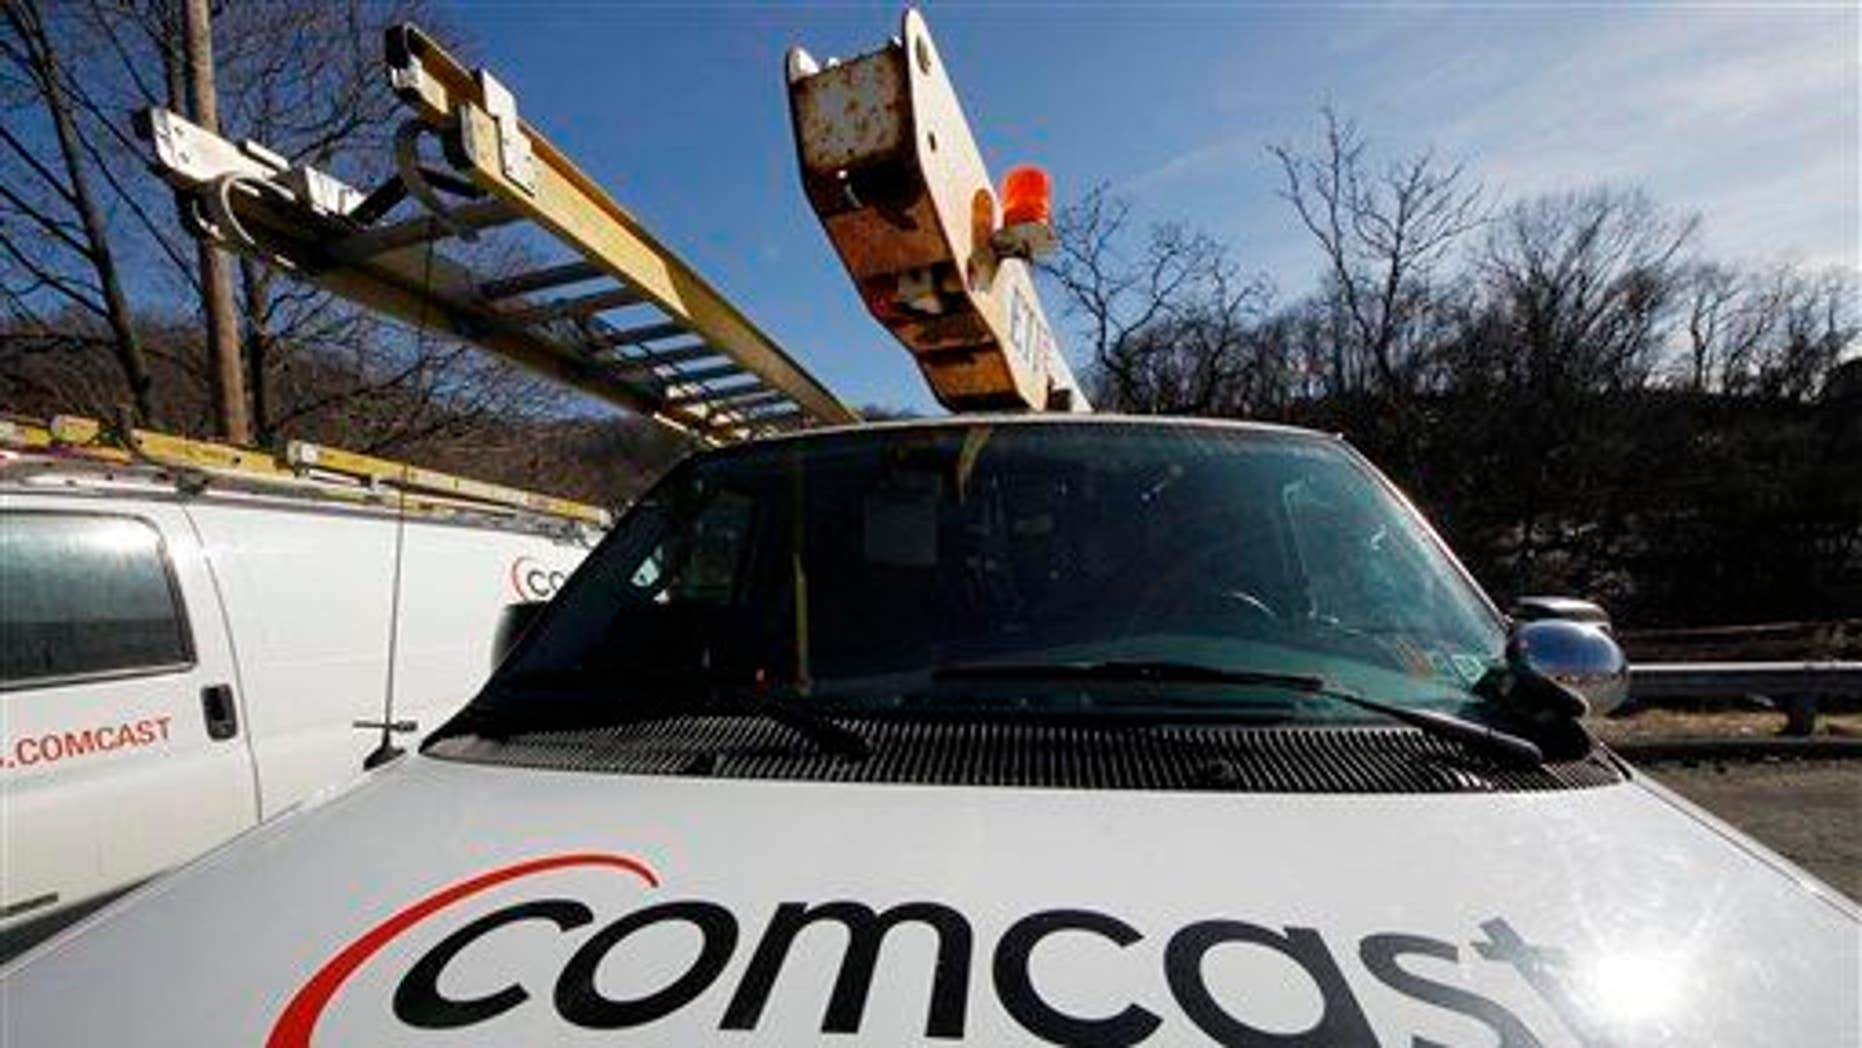 The Comcast logo is seen on a Comcast installation truck in Pittsburgh.